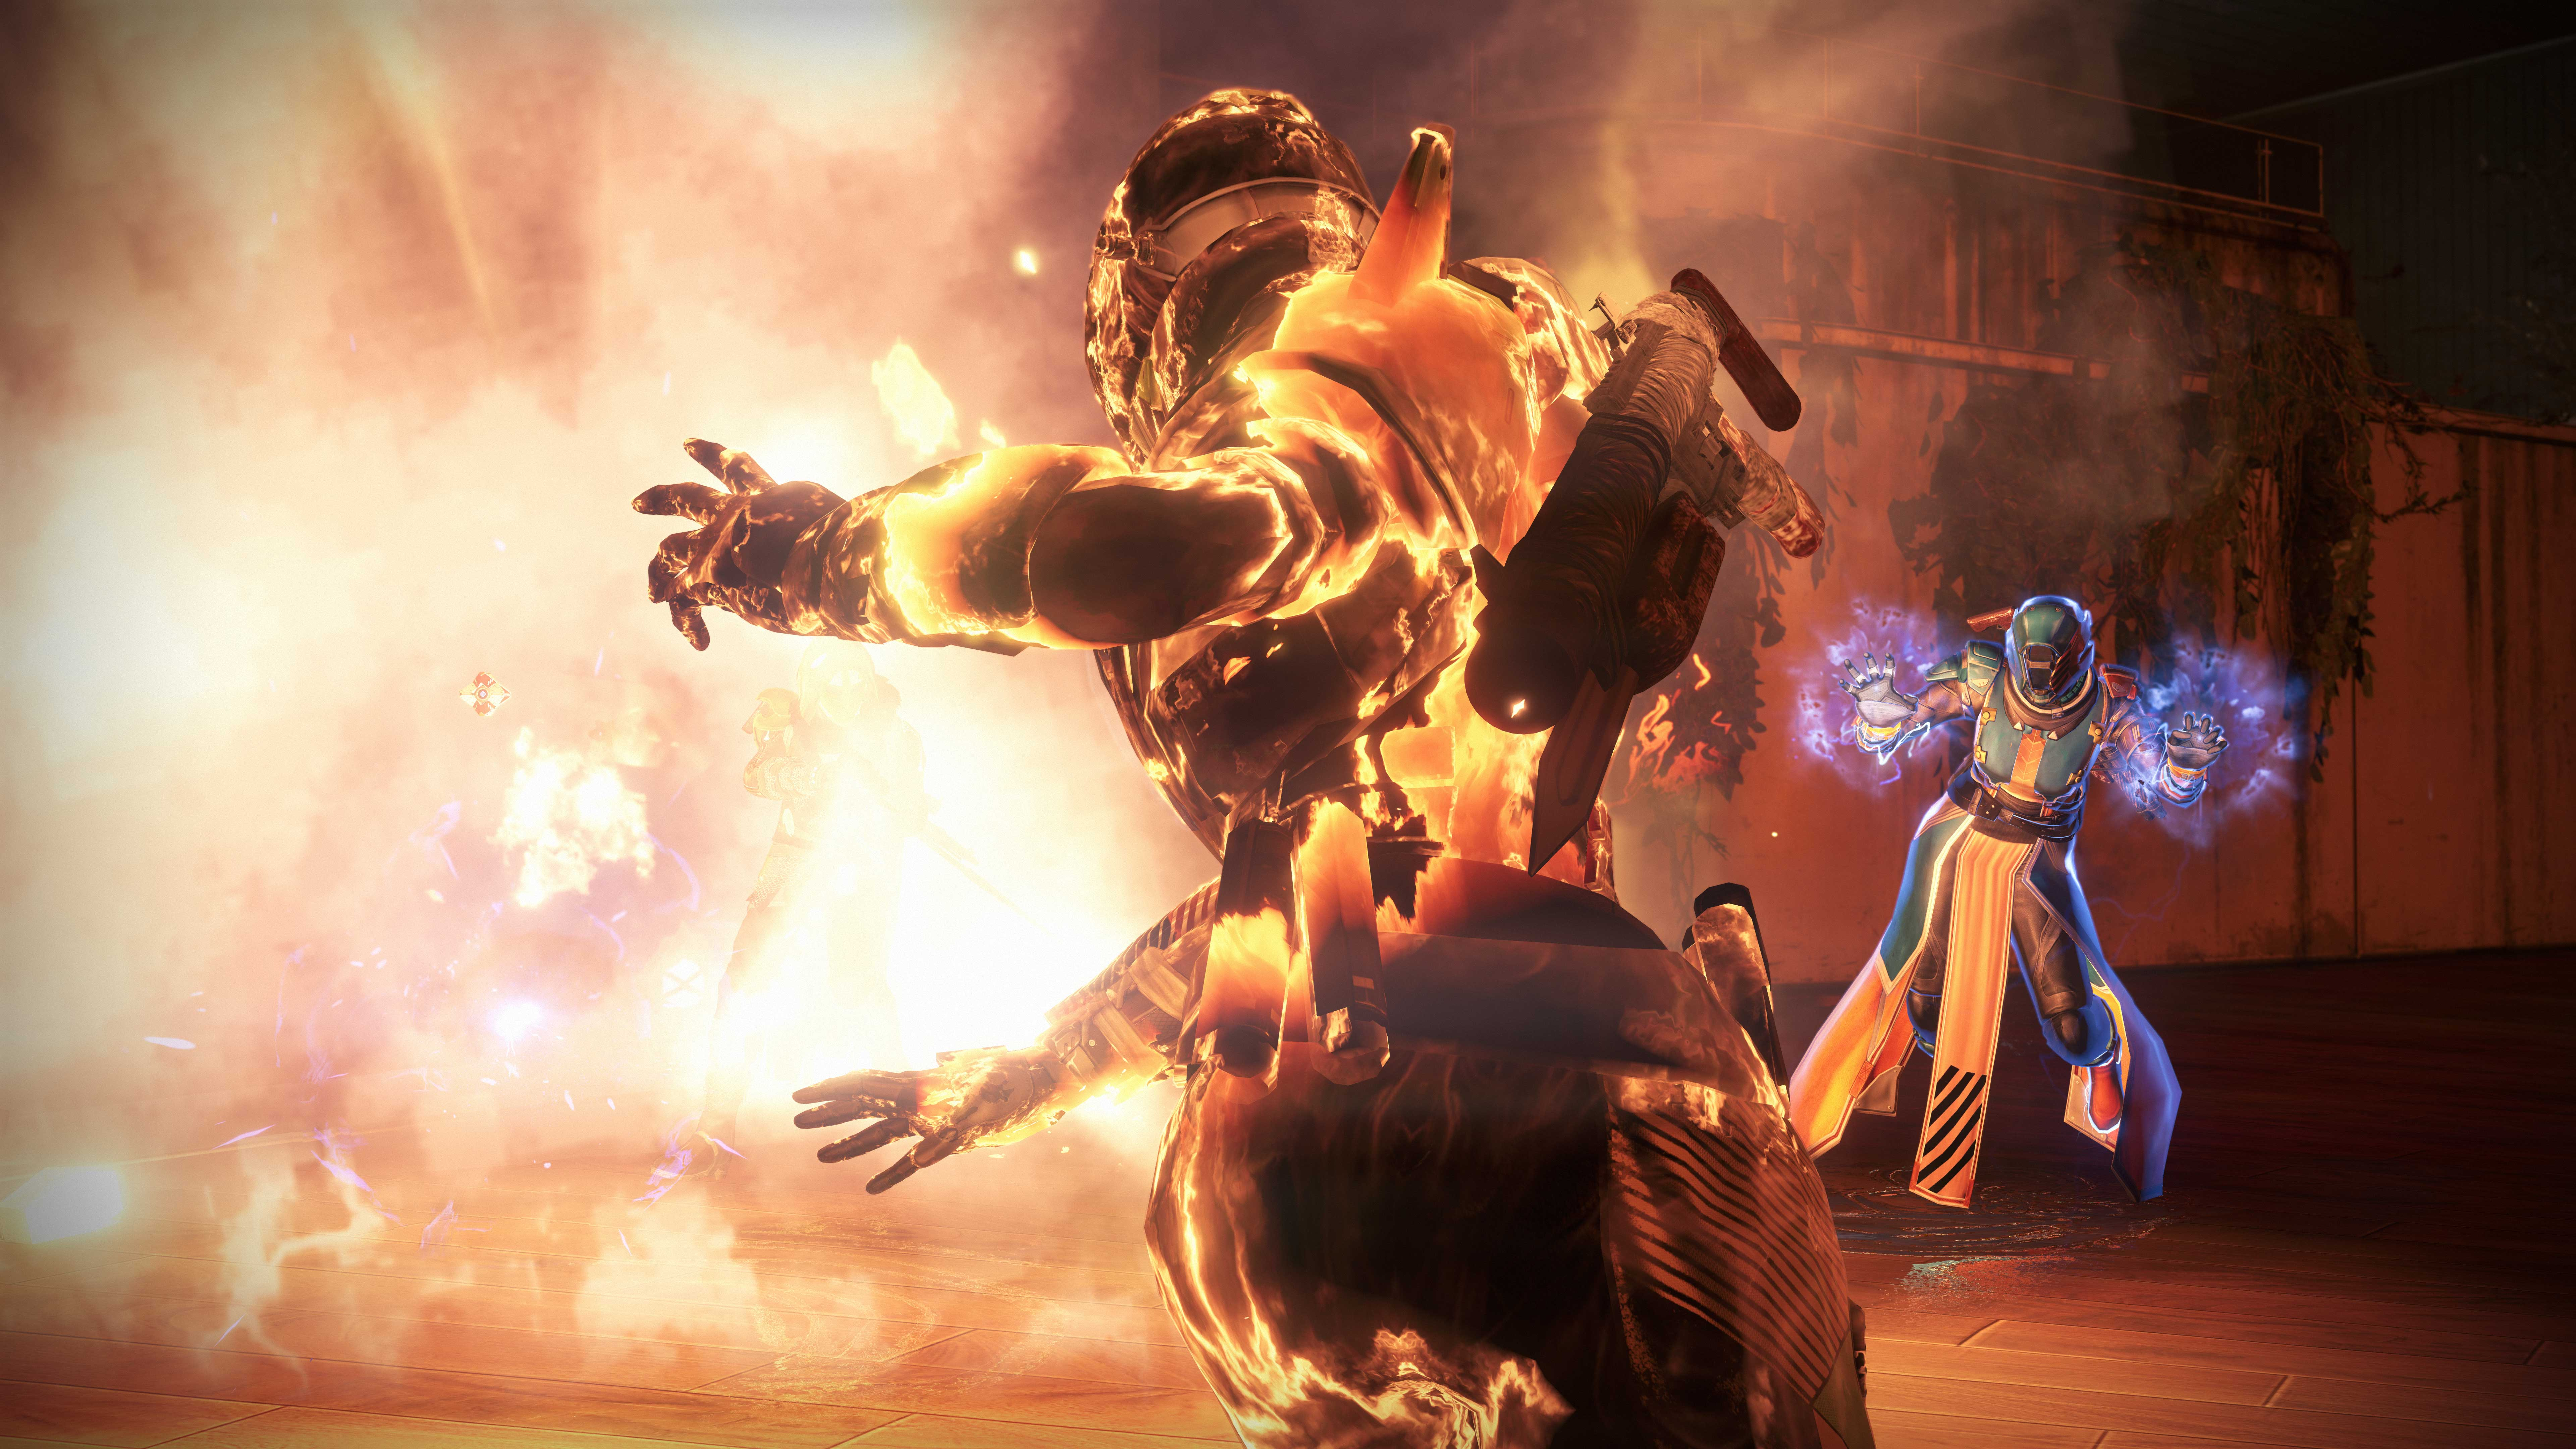 Destiny I Signori del Ferro come installare Patch 1.28